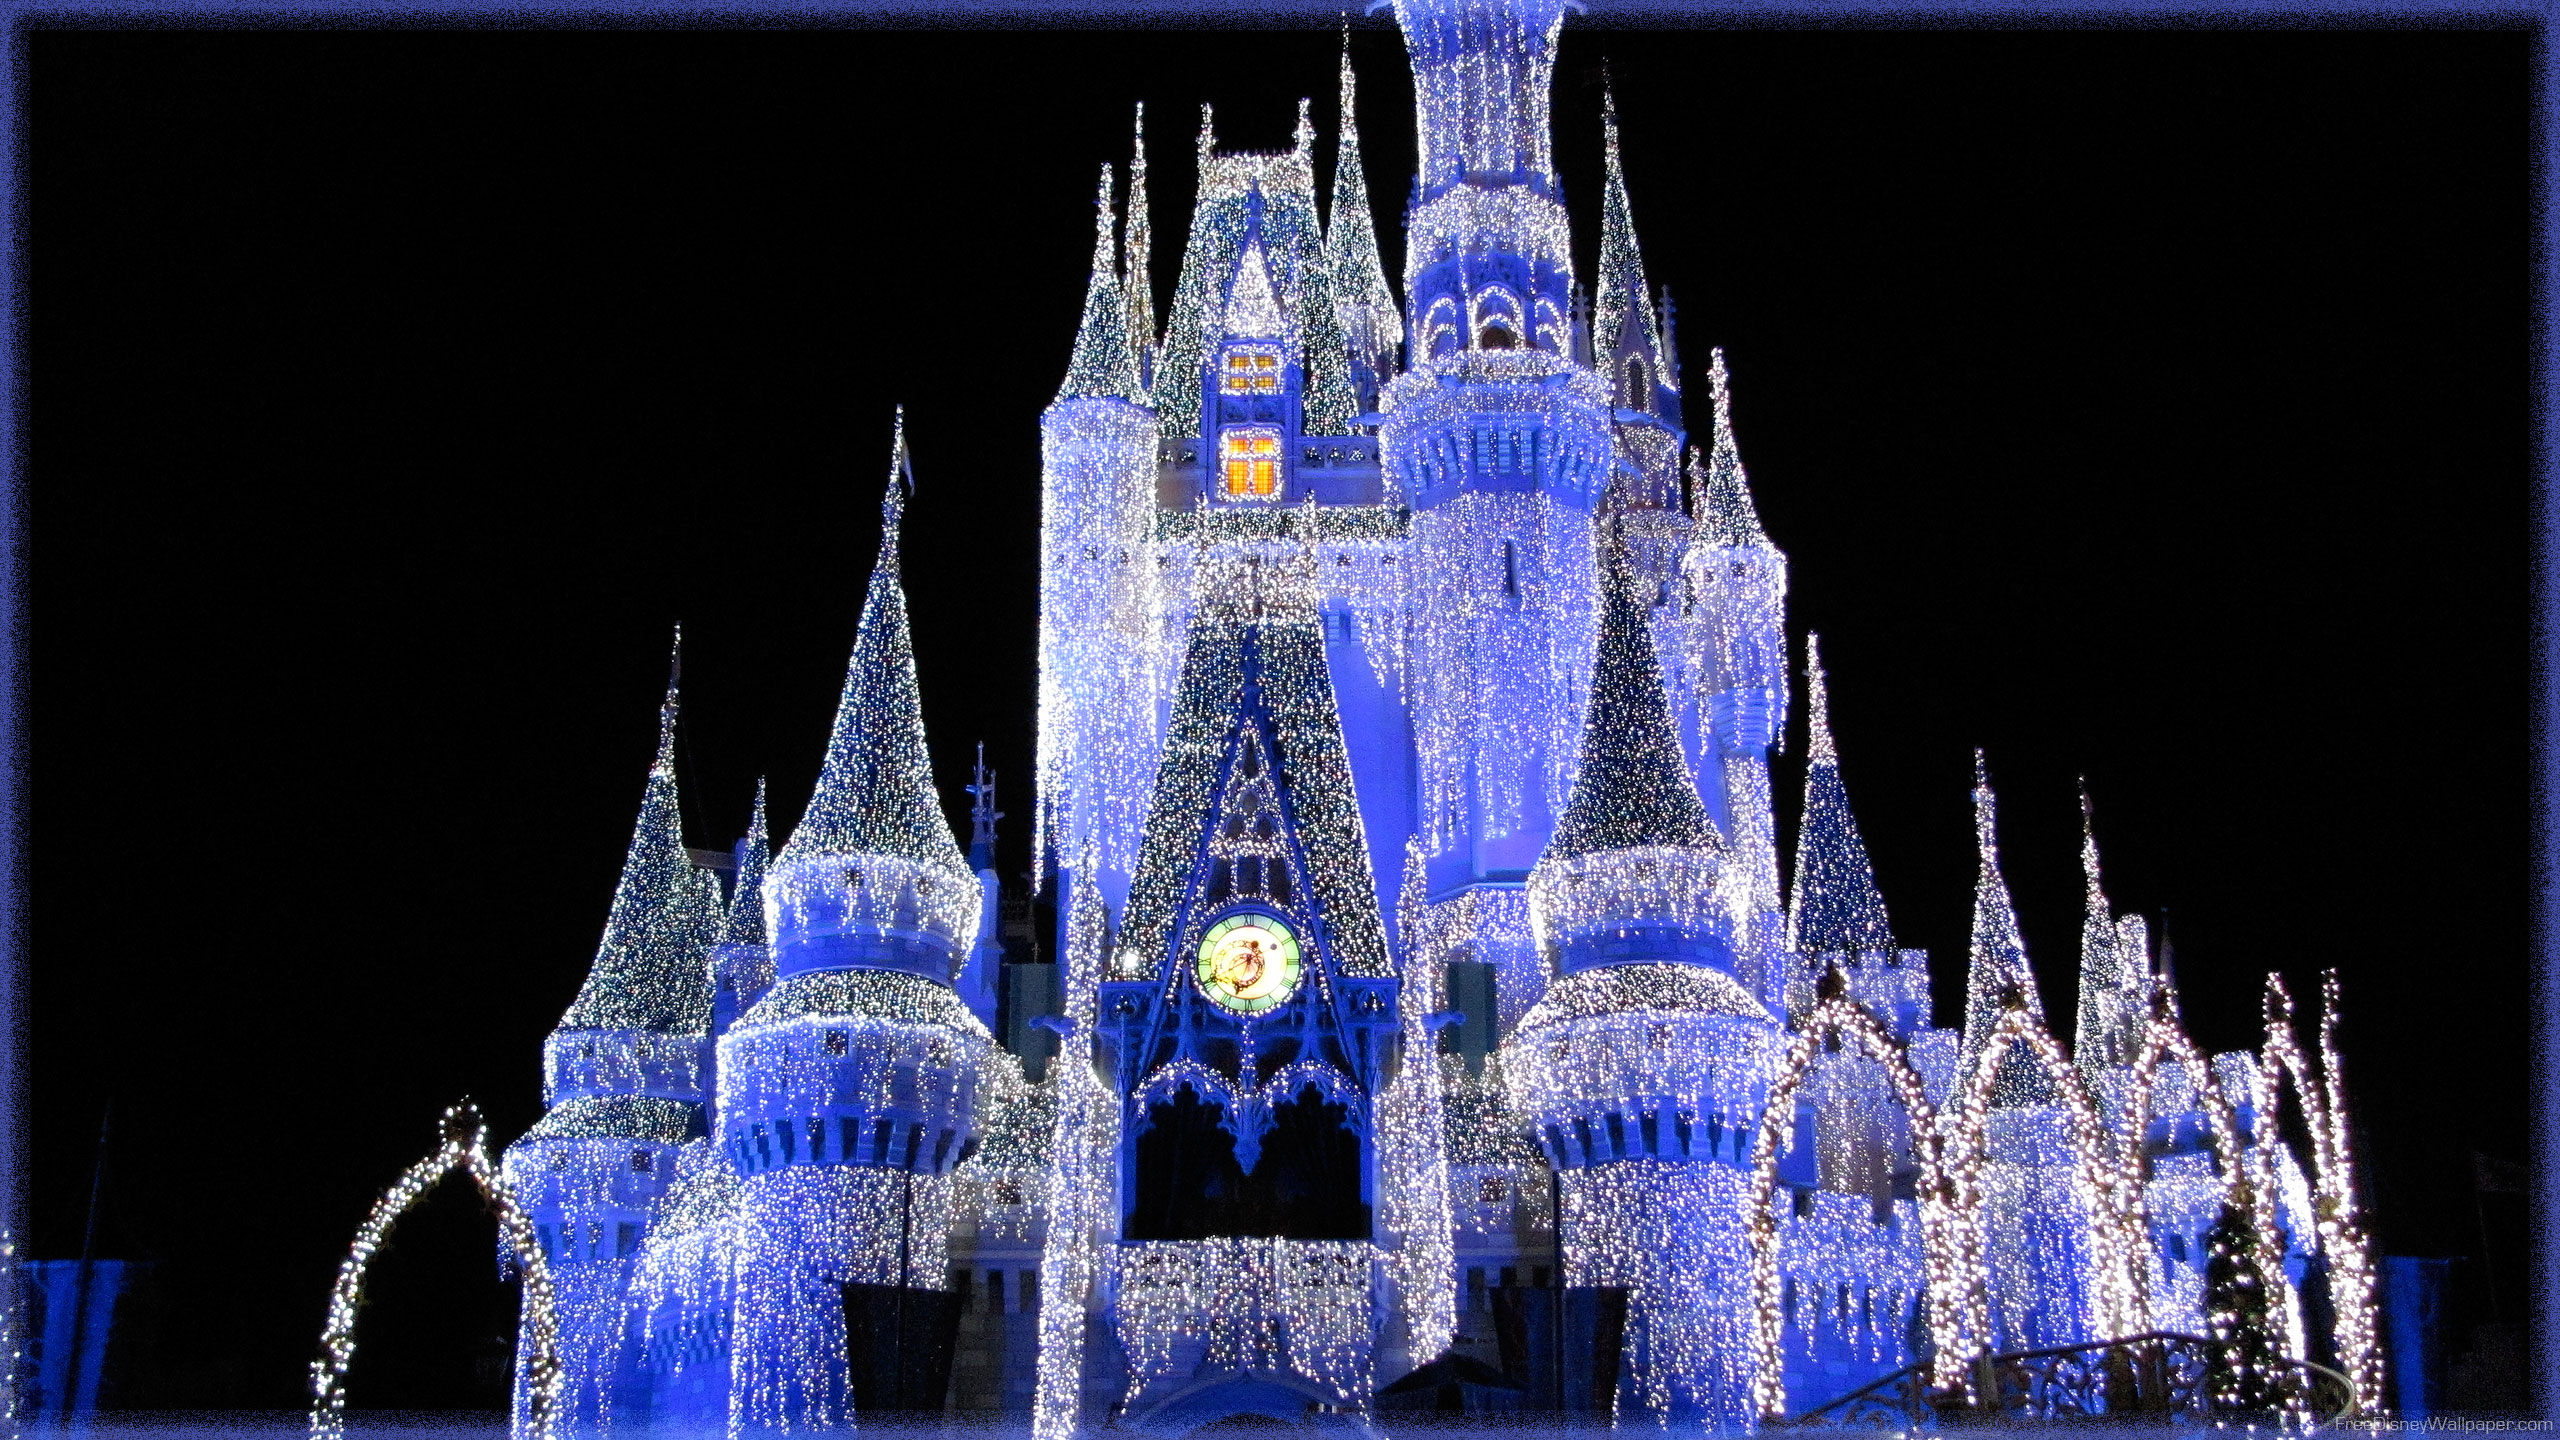 Disney com princess castle backgrounds disney princesses html code - Disney Wallpaper Free Disney Wallpapers Cinderella Castle